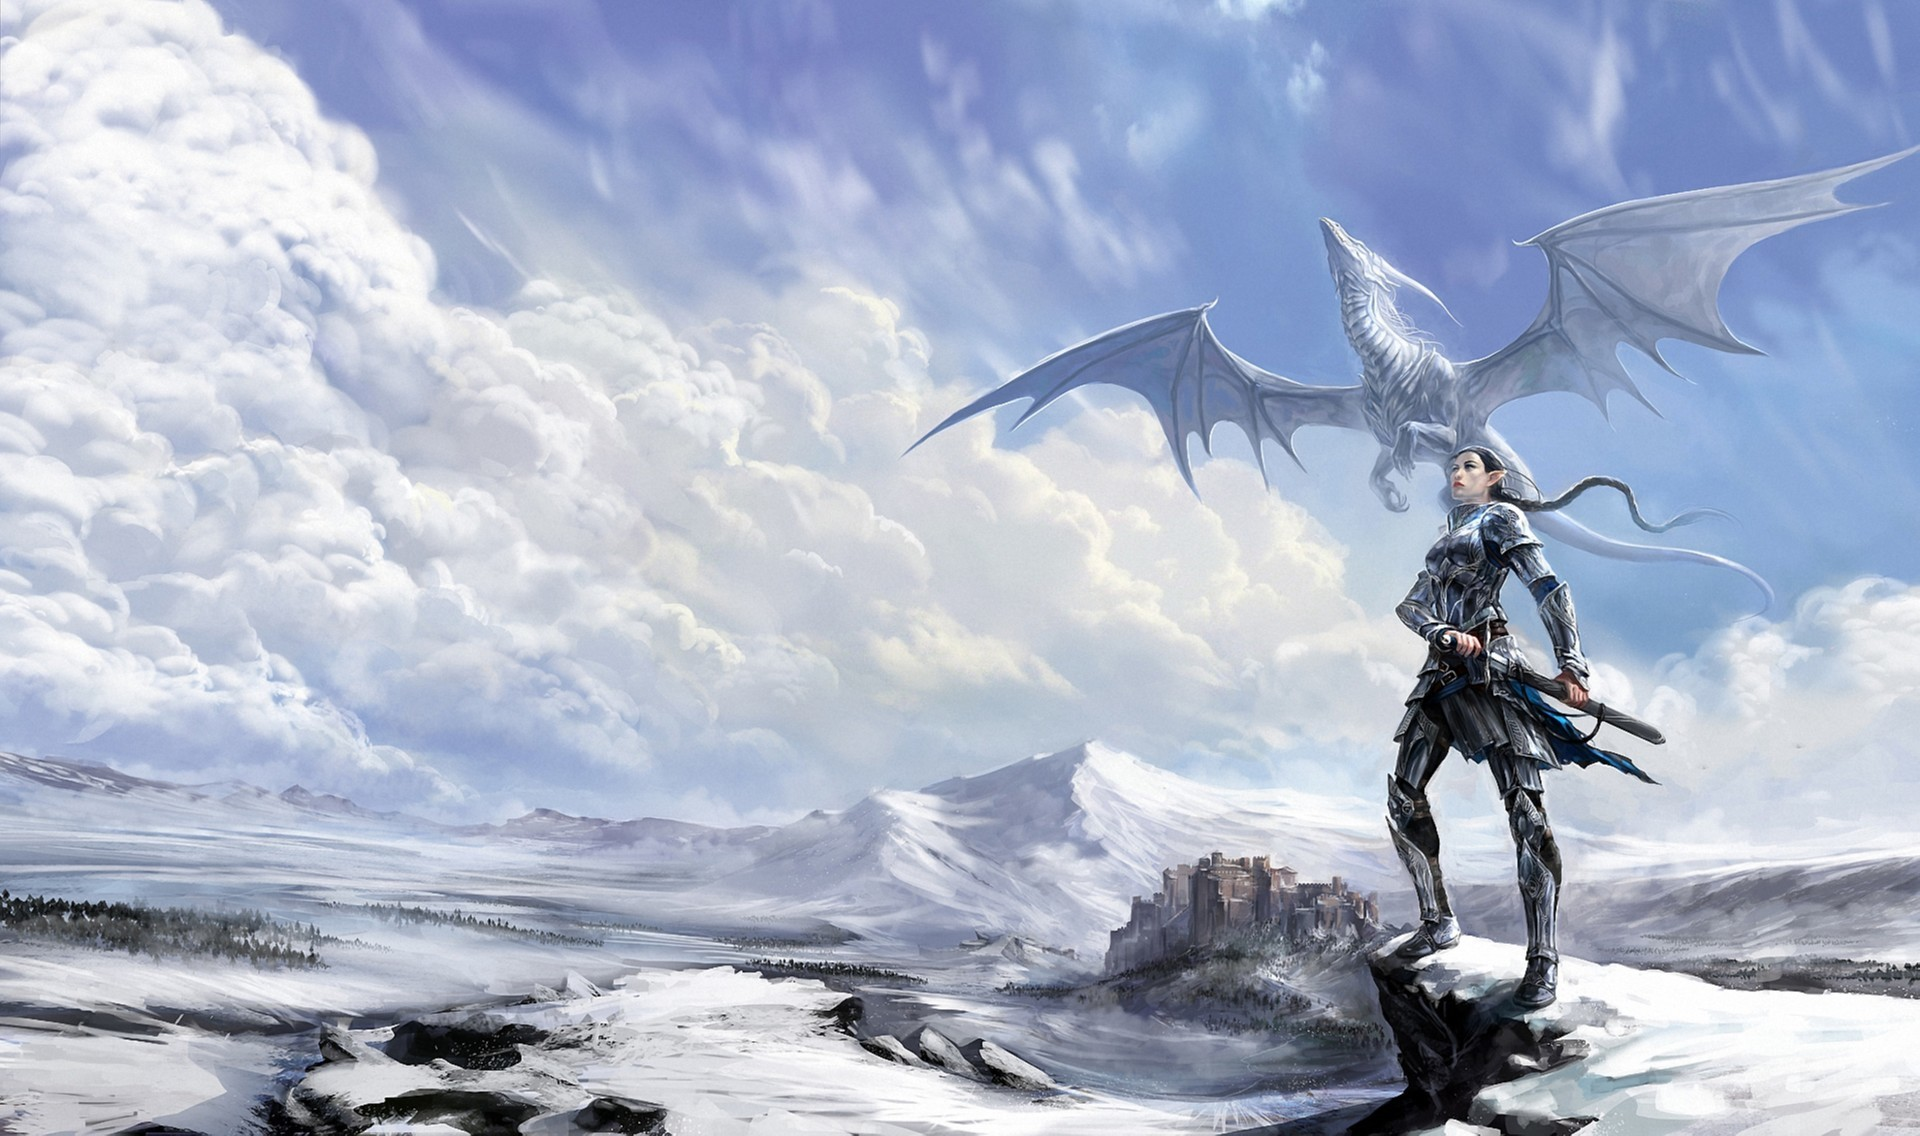 girl, elves, dragon, sword, snow, fantasy art - wallpaper #119771